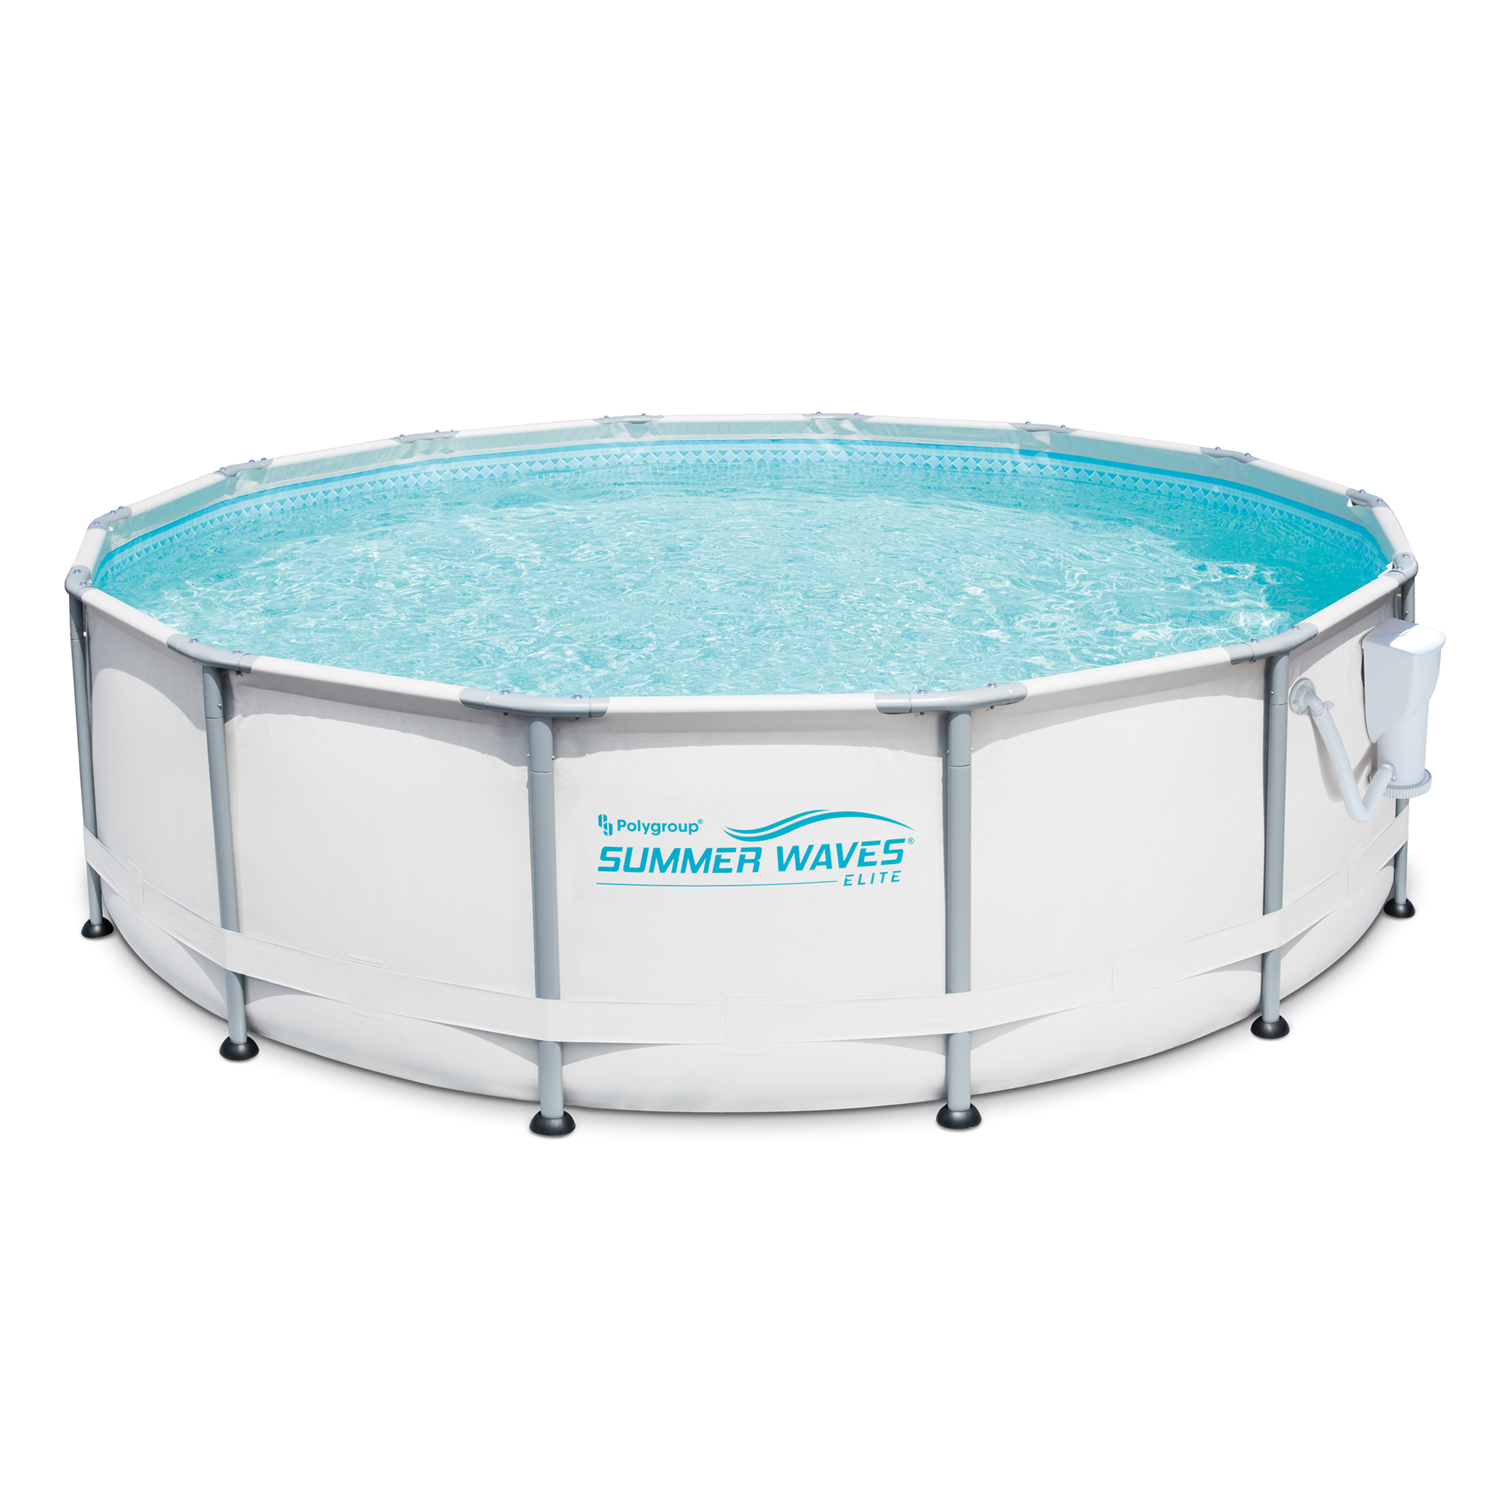 Jacuzzi Pool Deluxe Summer Waves Elite 14 X 42